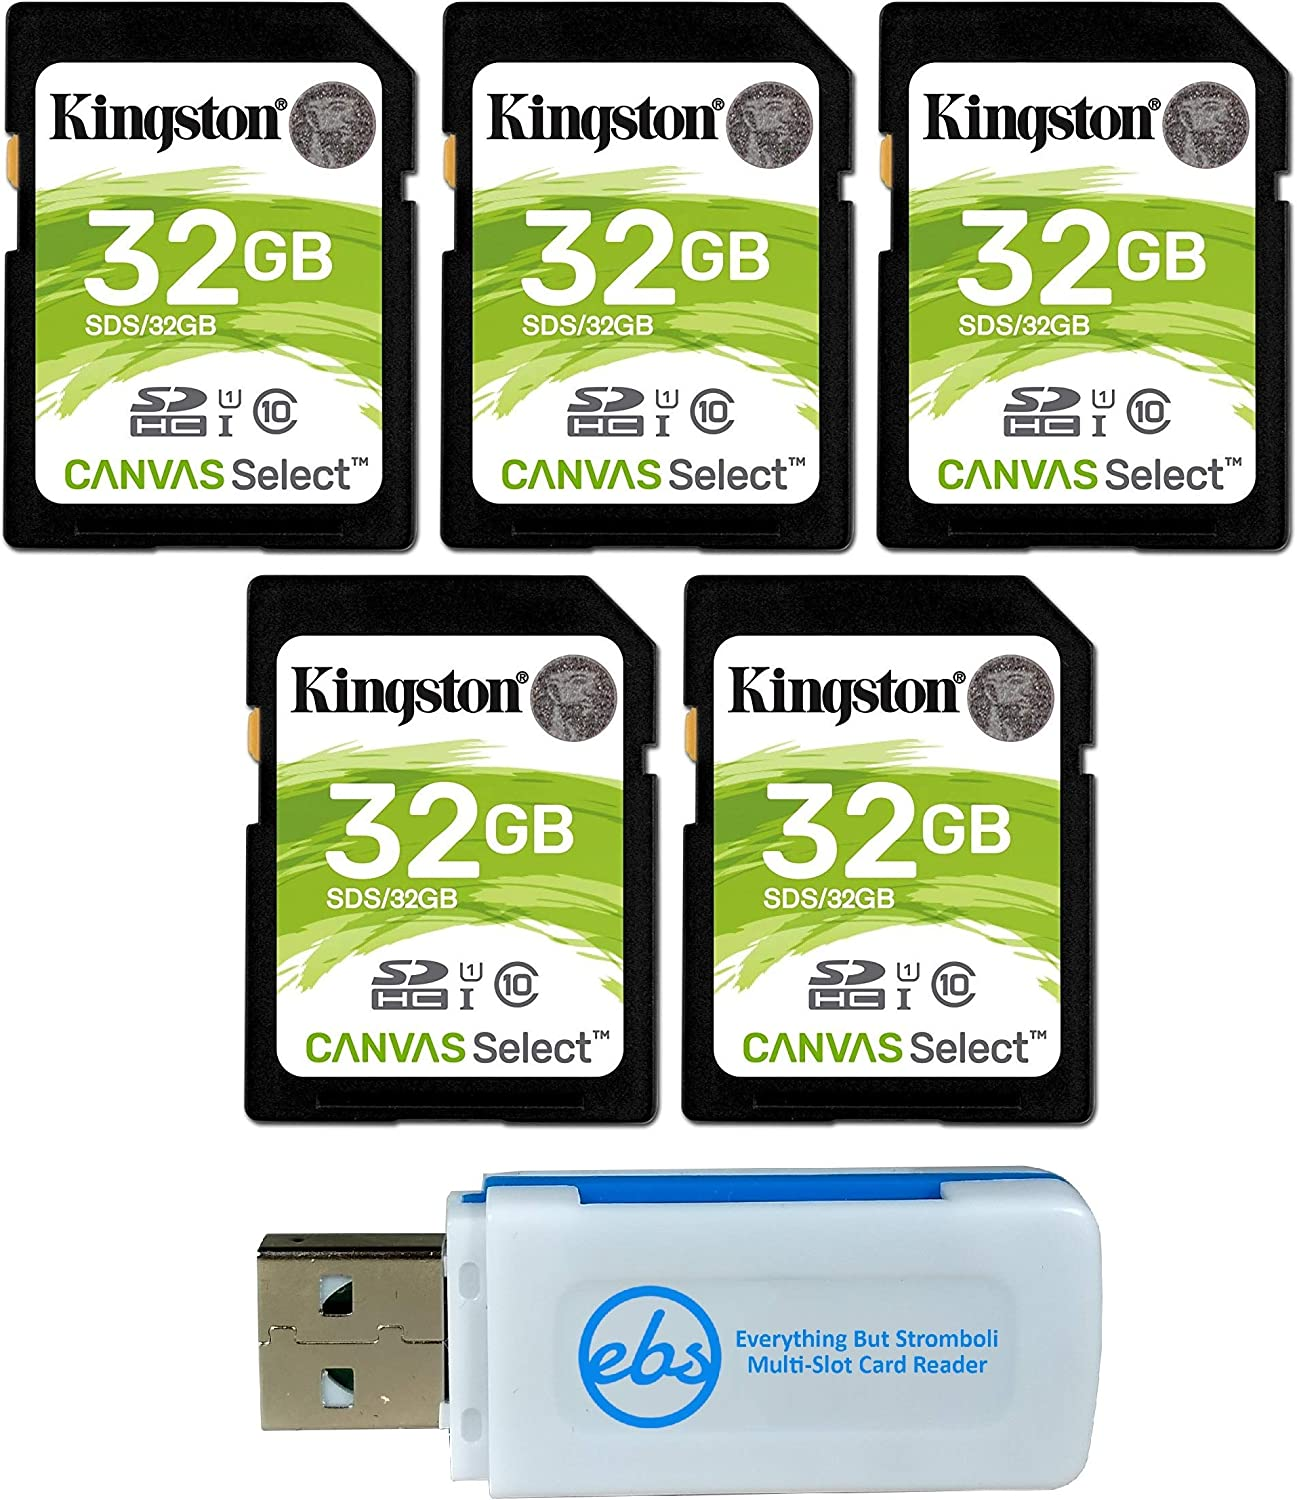 Kingston 32GB SD Memory Card (5 Pack) Canvas Select SDHC Card Class 10 UHS-1 (SDS/32GB) Bundle with (1) Everything But Stromboli SD & Micro Card Reader: Amazon.es: Electrónica